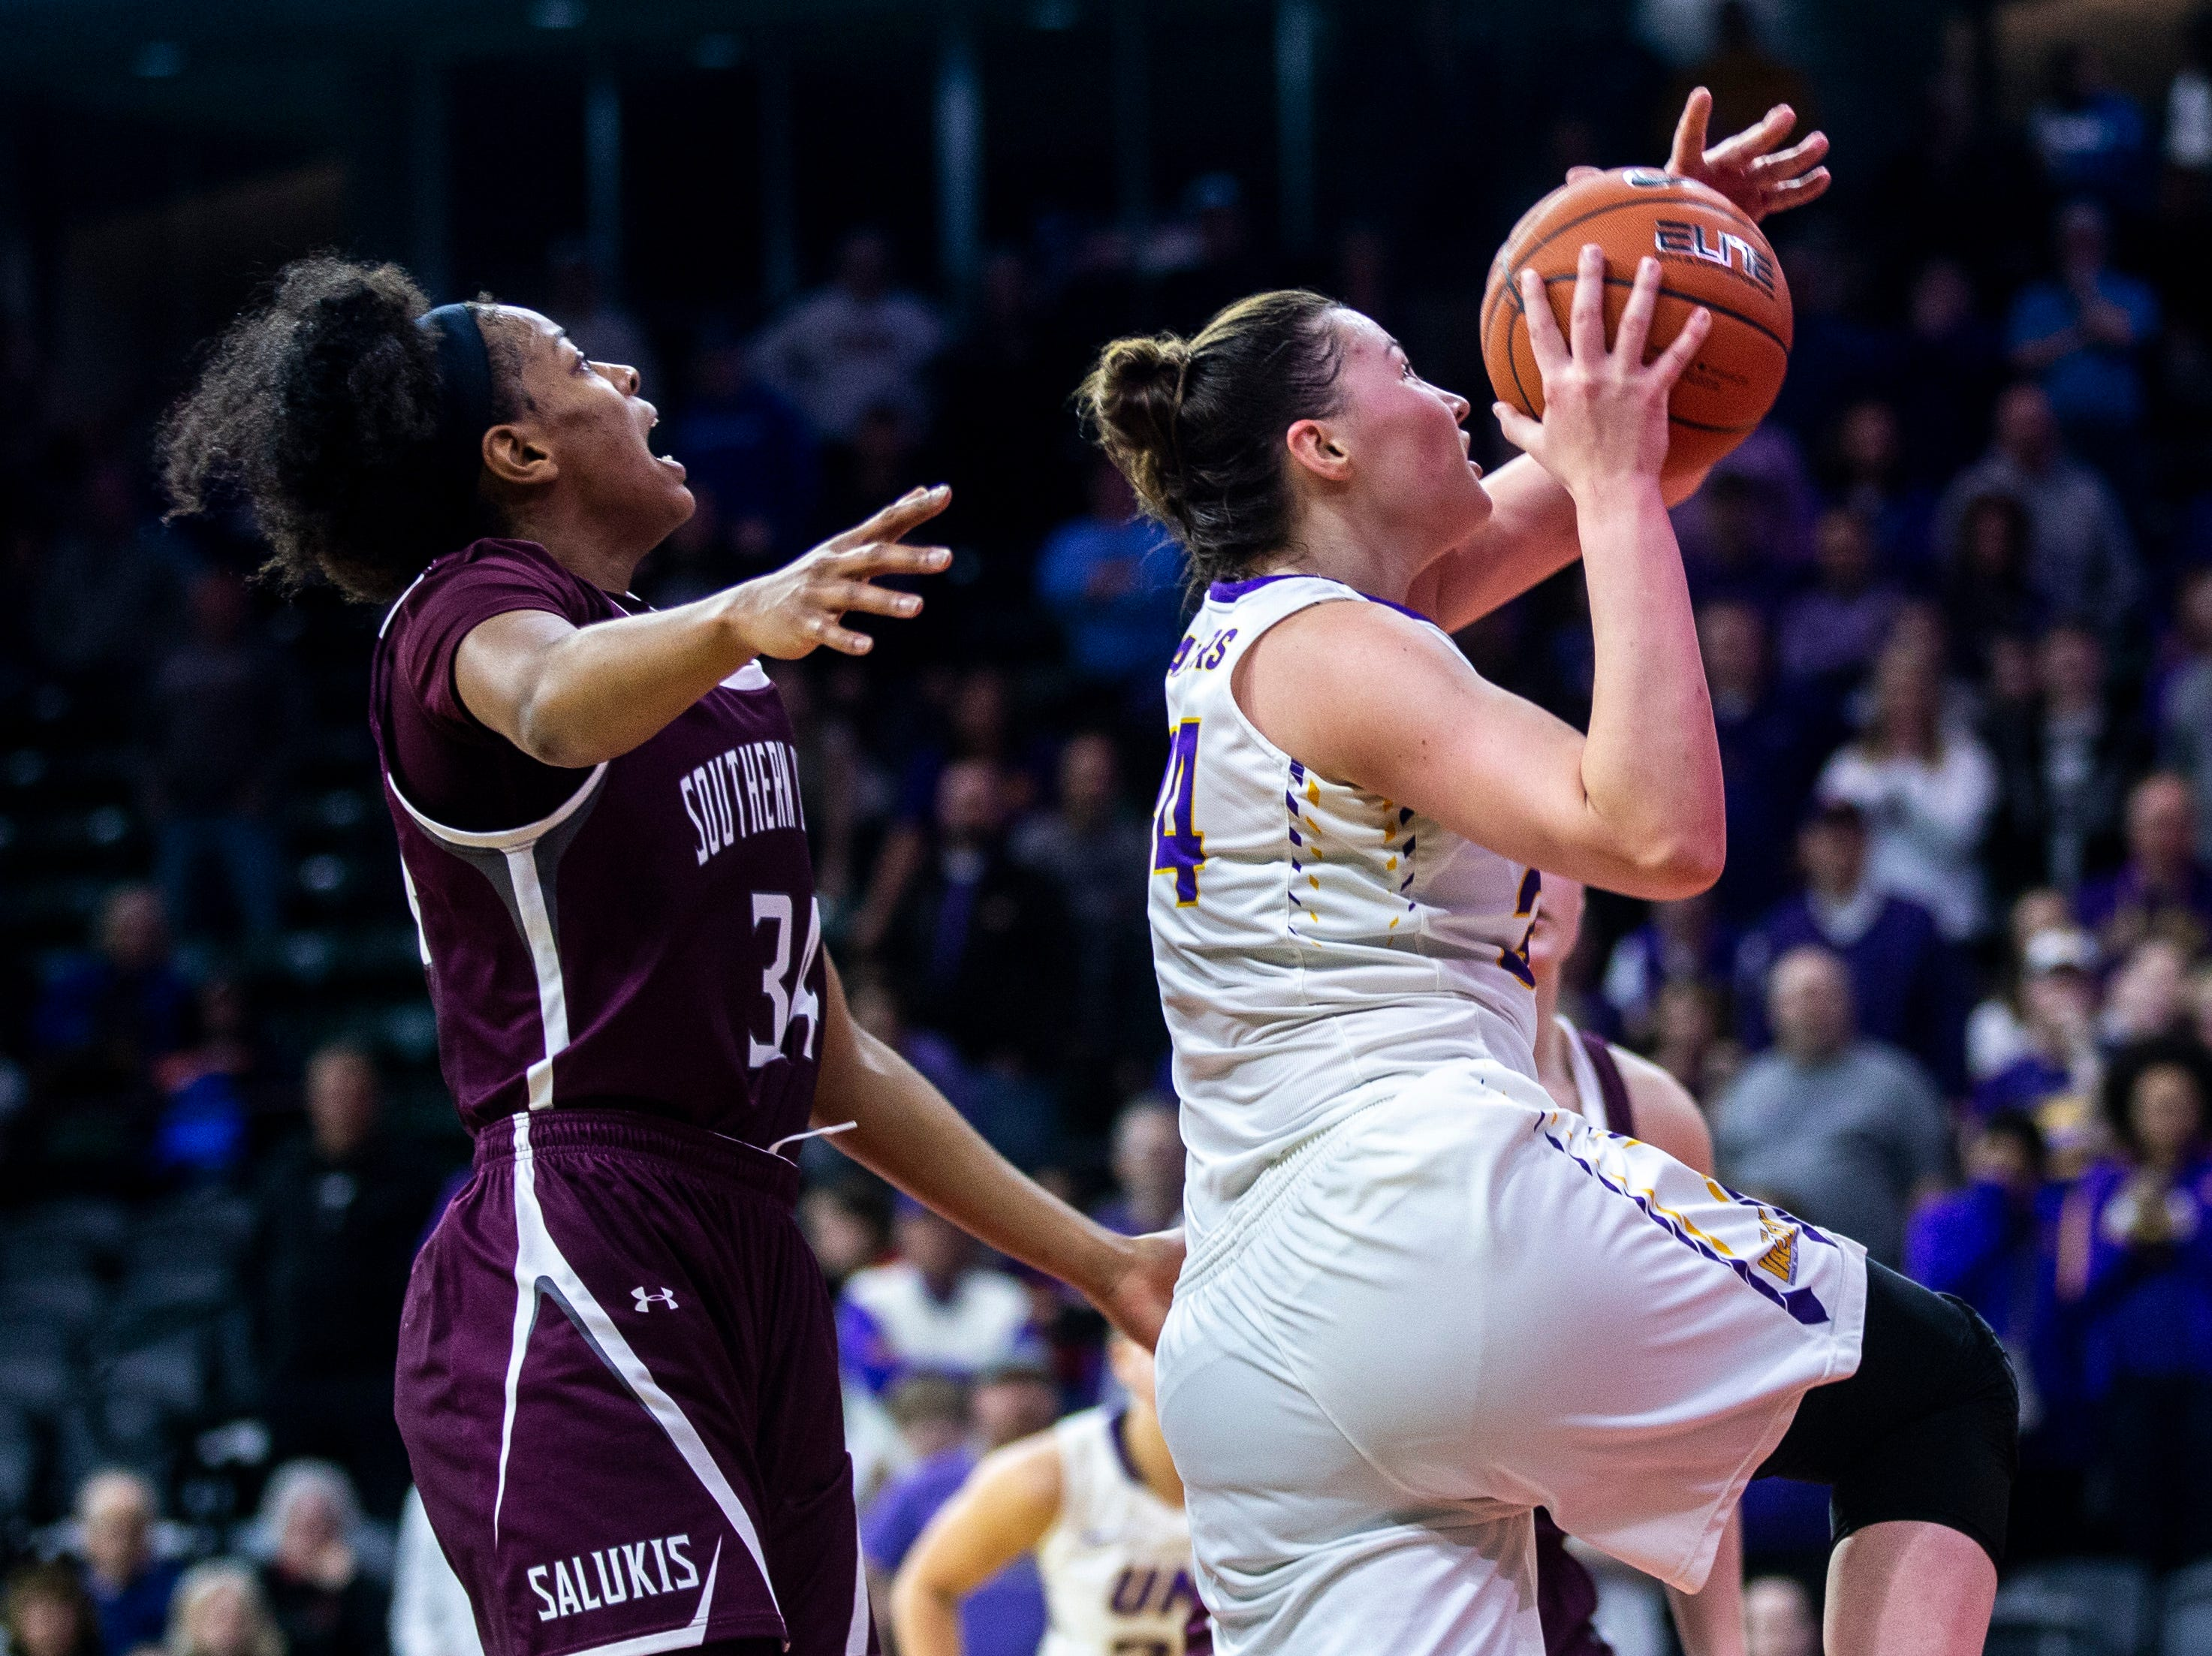 Northern Iowa forward Taylor Hagen drives to the basket past Southern Illinois forward Nicole Martin, left, during a NCAA Missouri Valley Conference women's basketball quarterfinal tournament game, Friday, March 15, 2019, at the TaxSlayer Center in Moline, Illinois.